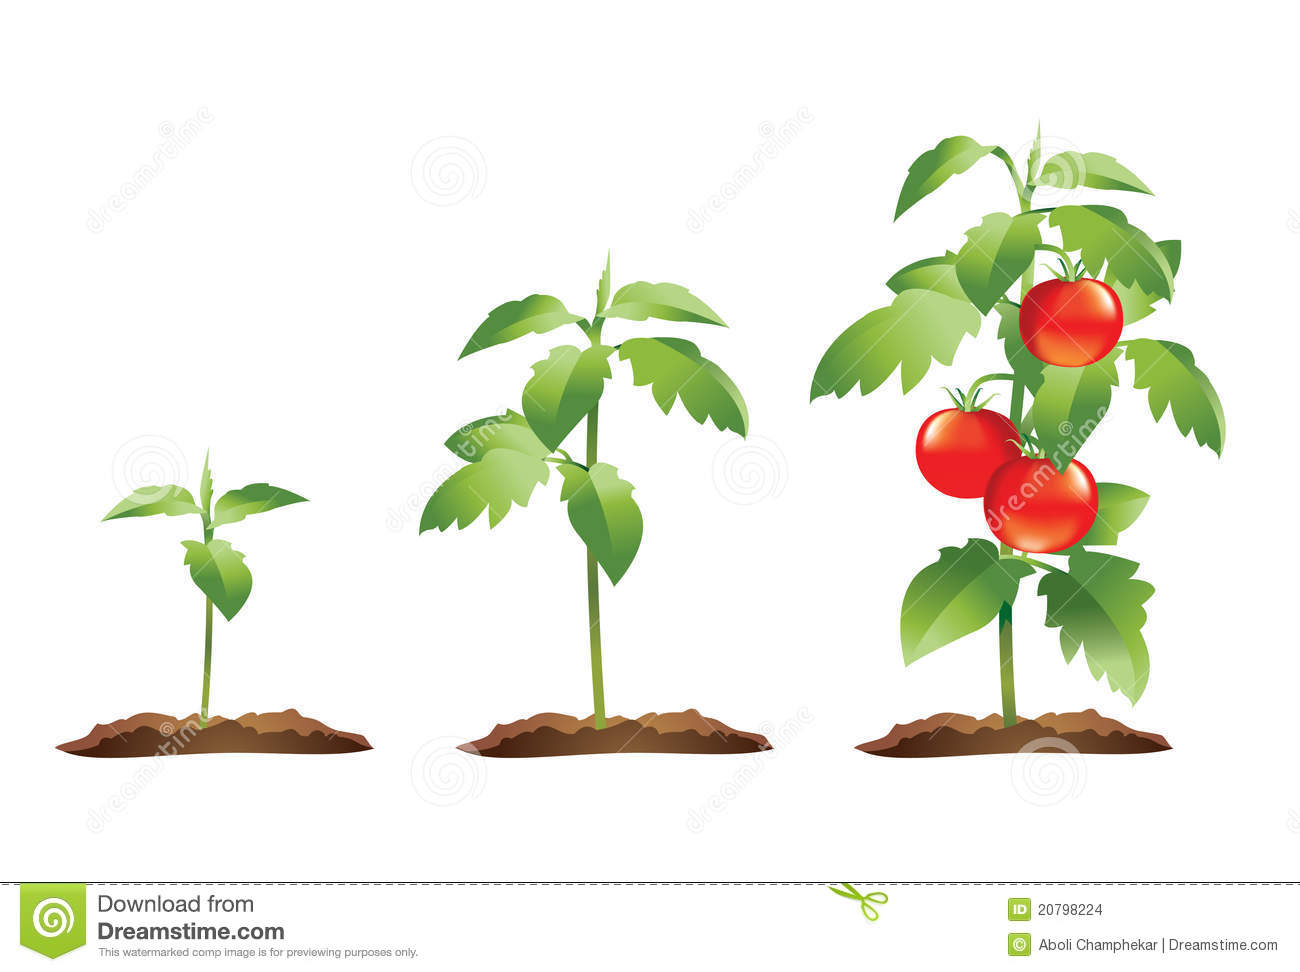 Stages Of Growth Of A Small Tomato Plant To A Fully Grown Plant